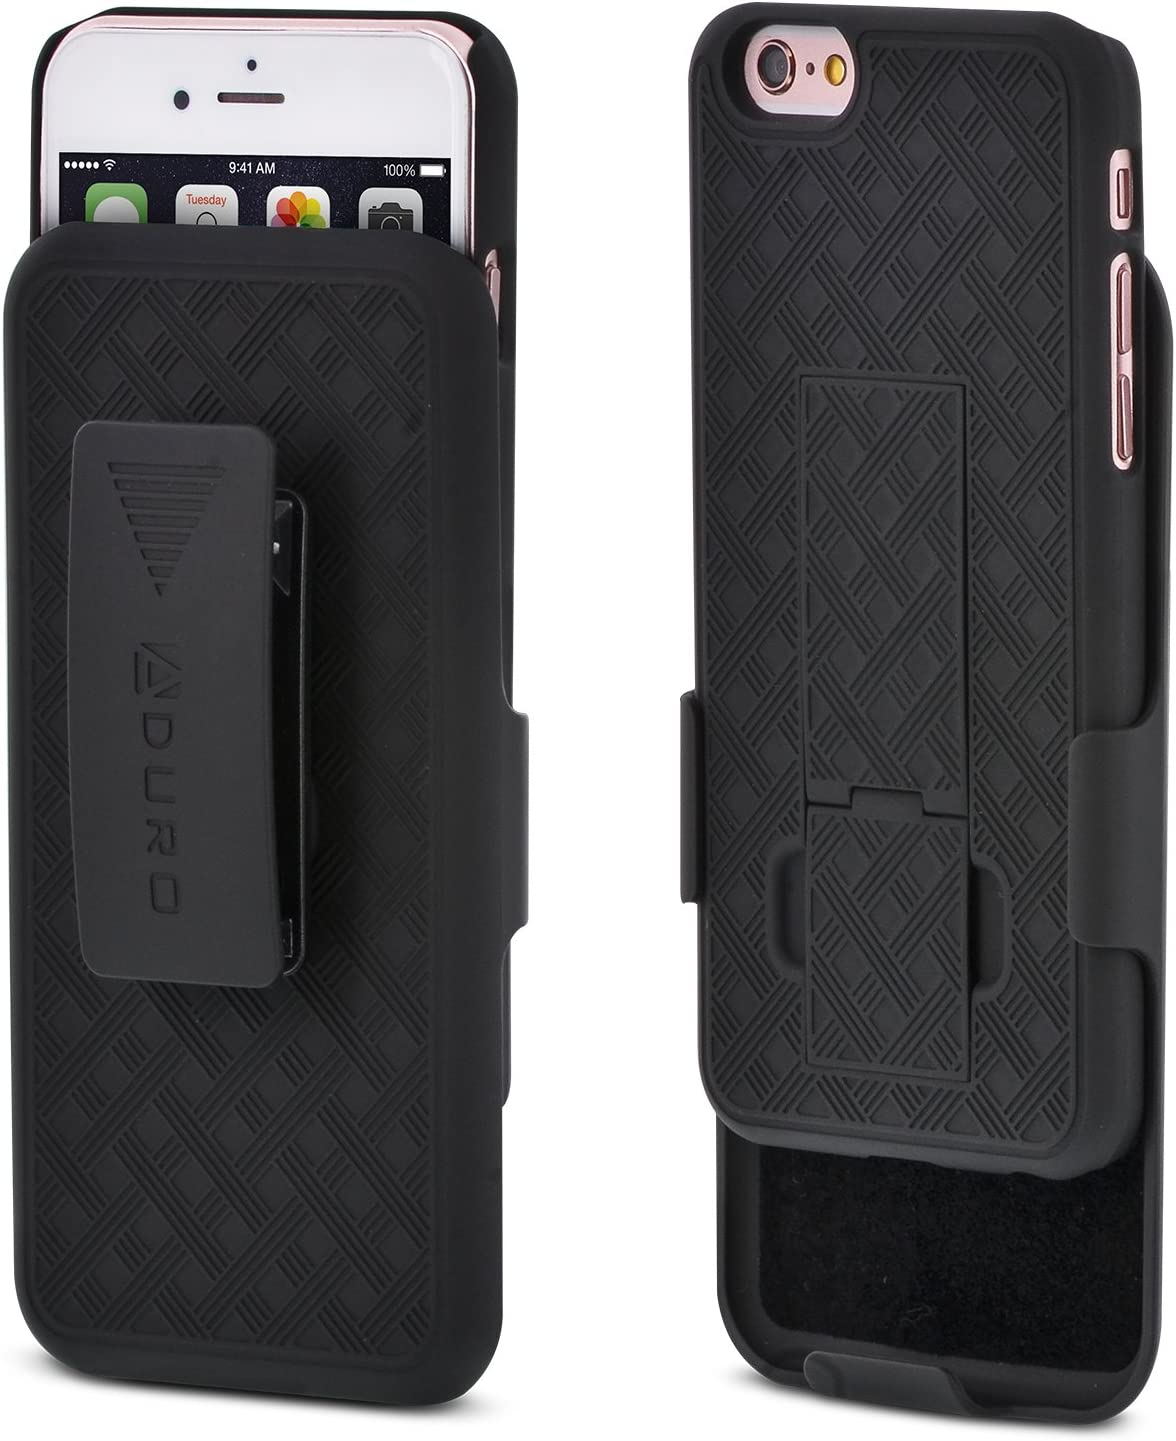 iPhone 6S / 6 Case, Aduro Combo Shell & Holster Case Super Slim Shell Case w/Built-in Kickstand + Swivel Belt Clip Holster for Apple iPhone 6S / 6